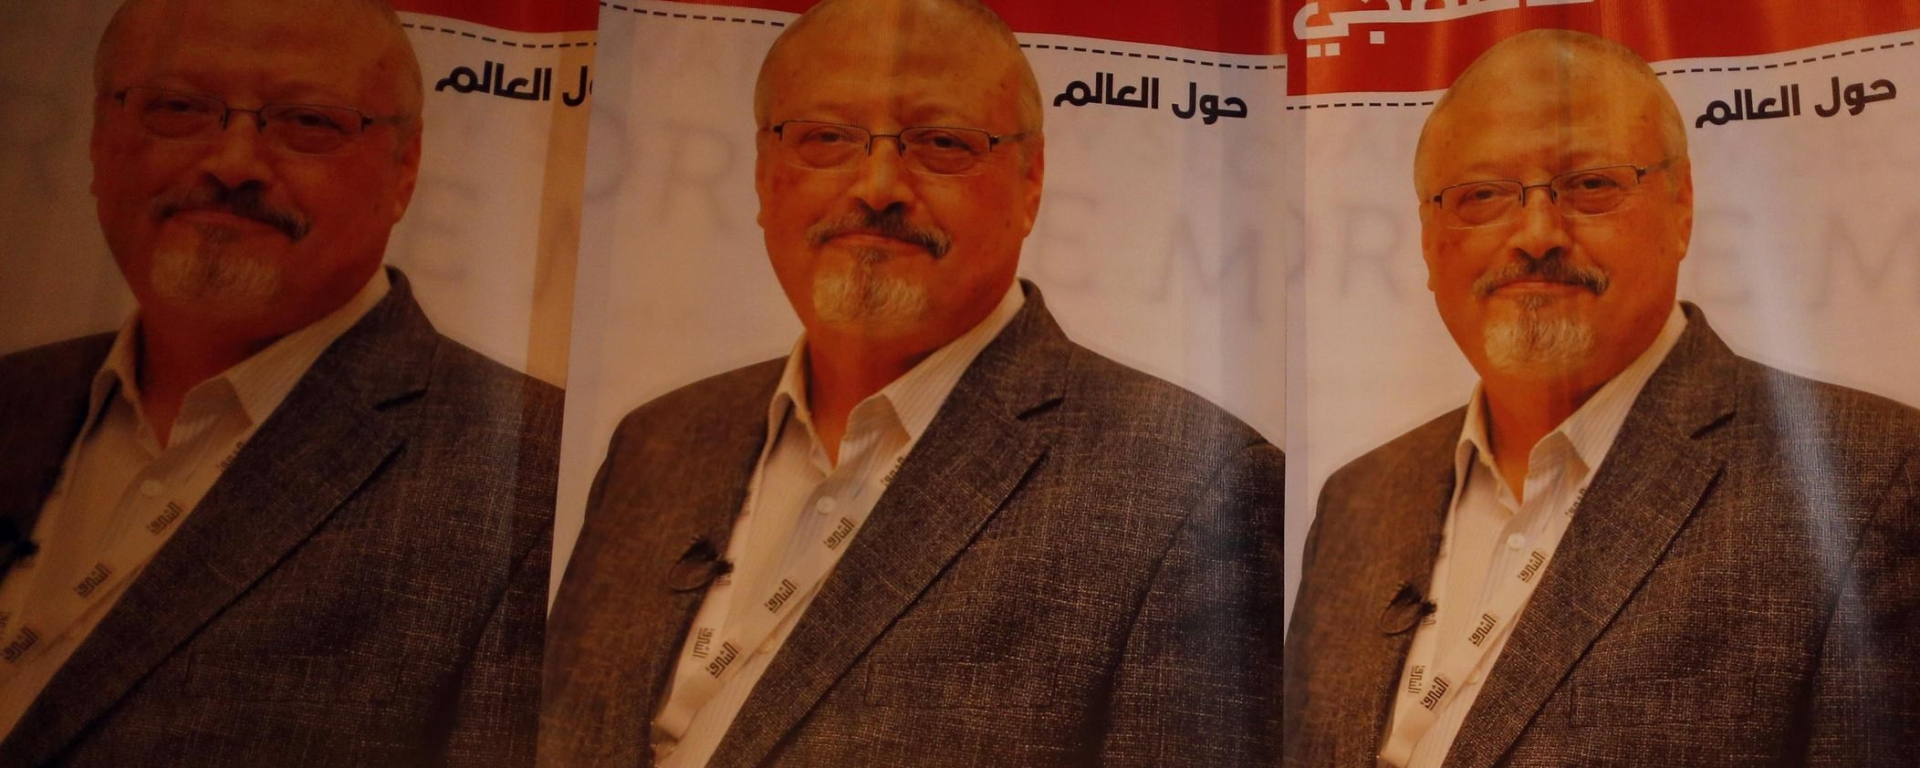 Saudi Arabia Now Says Khashoggi Killing Was Premeditated